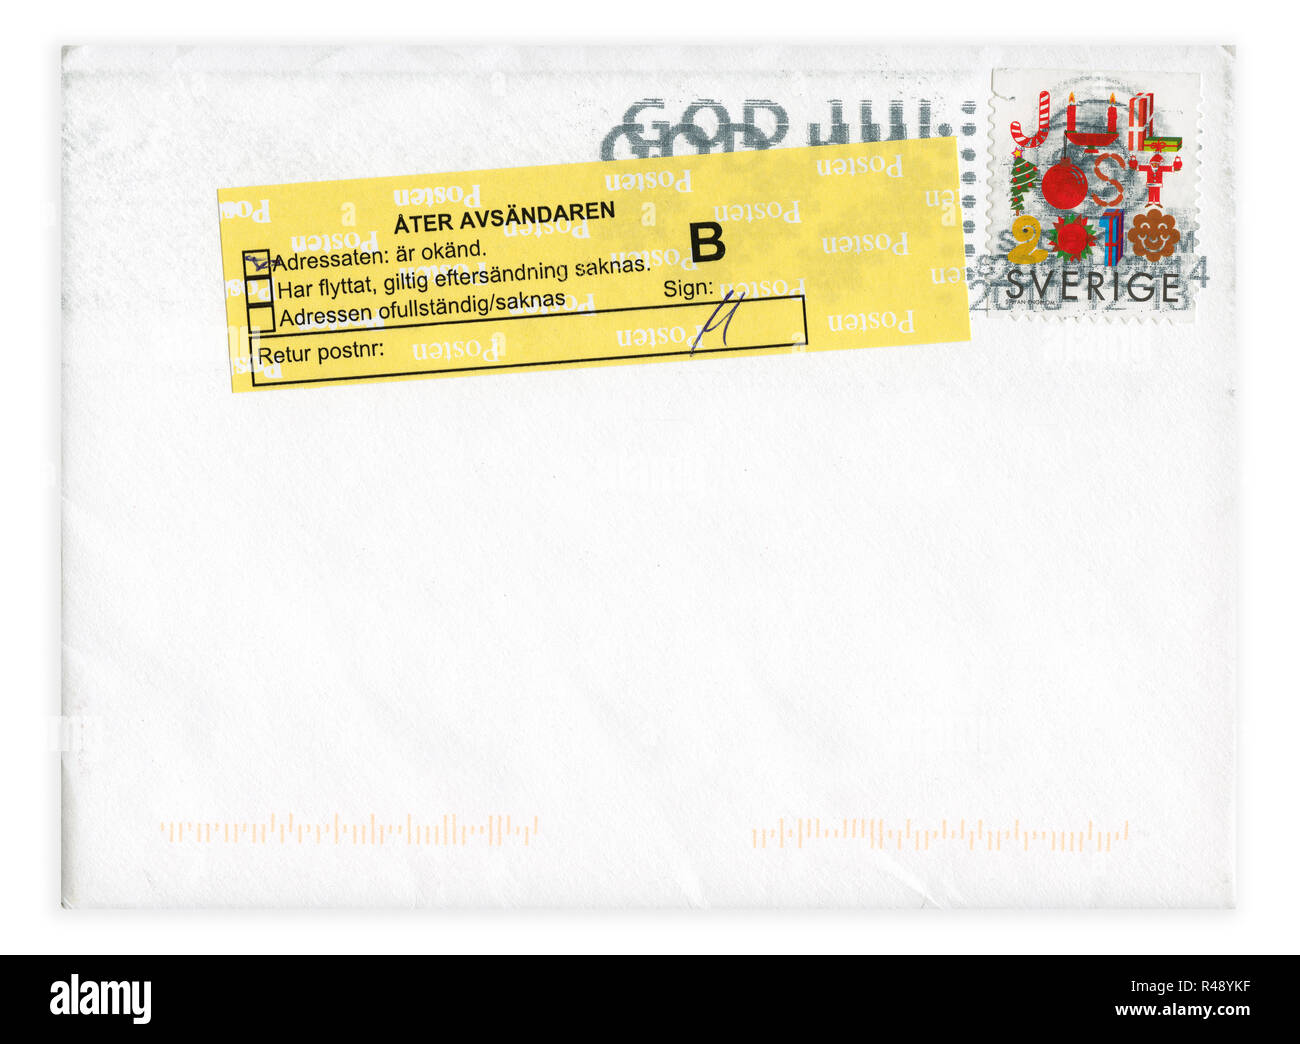 Postage stamp from Sweden in the Christmas 2010 series - Stock Image